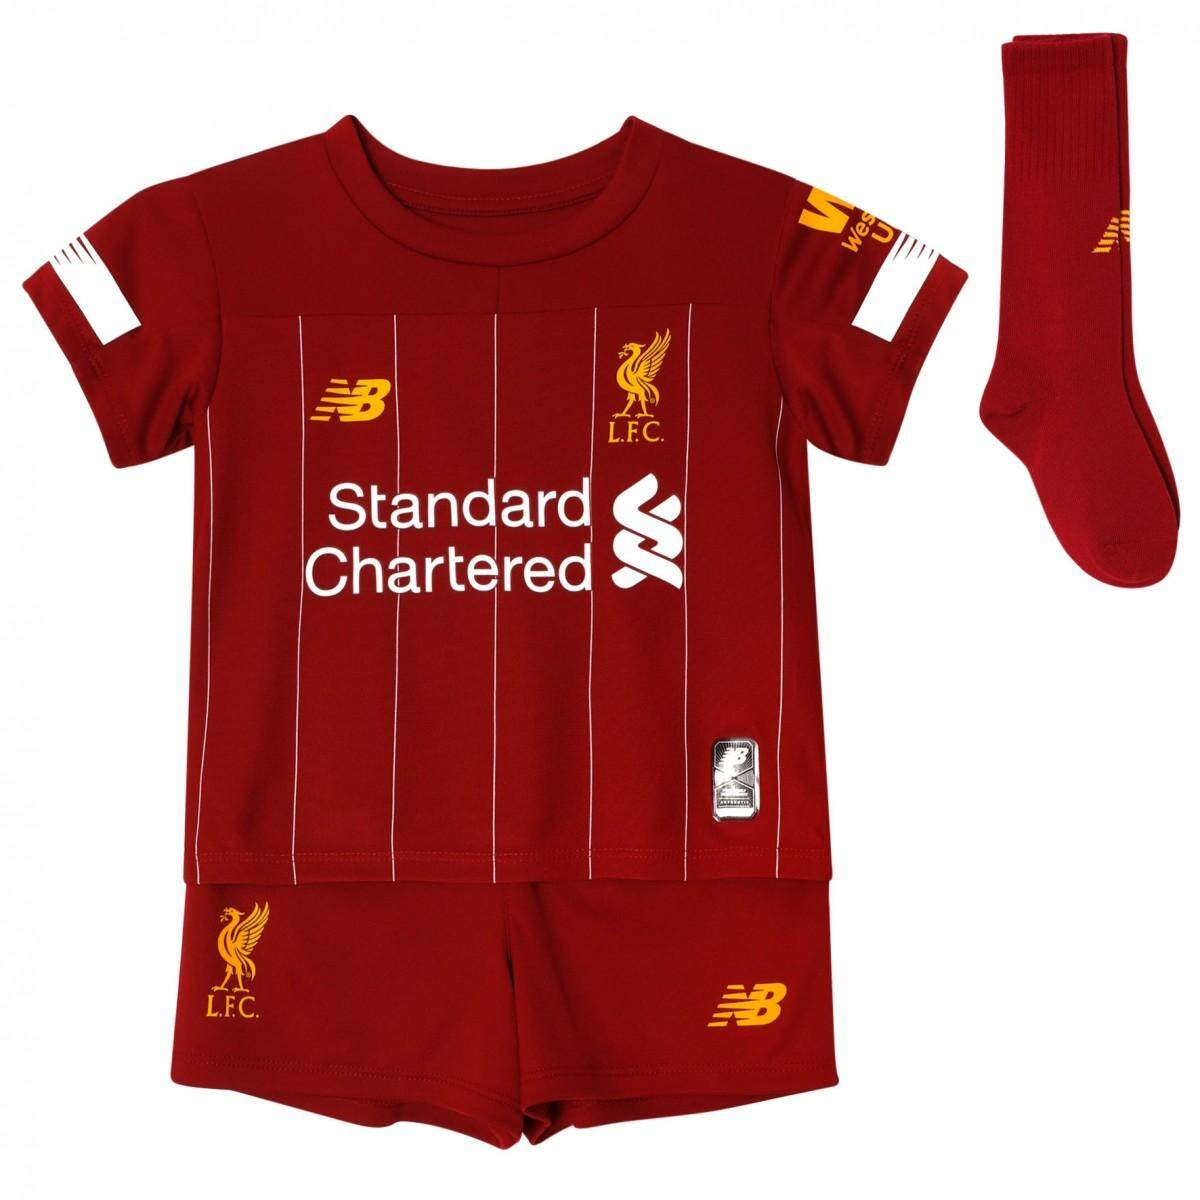 buy popular 5a9b8 77107 Top Quality 2019/20 Liverpool_ Younger Kid's Home Football Soccer Kit  Jersey FIRMINO NO.9 MANE NO.10 M.SALAH NO.11 Children Soccer Jersey WITH  SOCKS